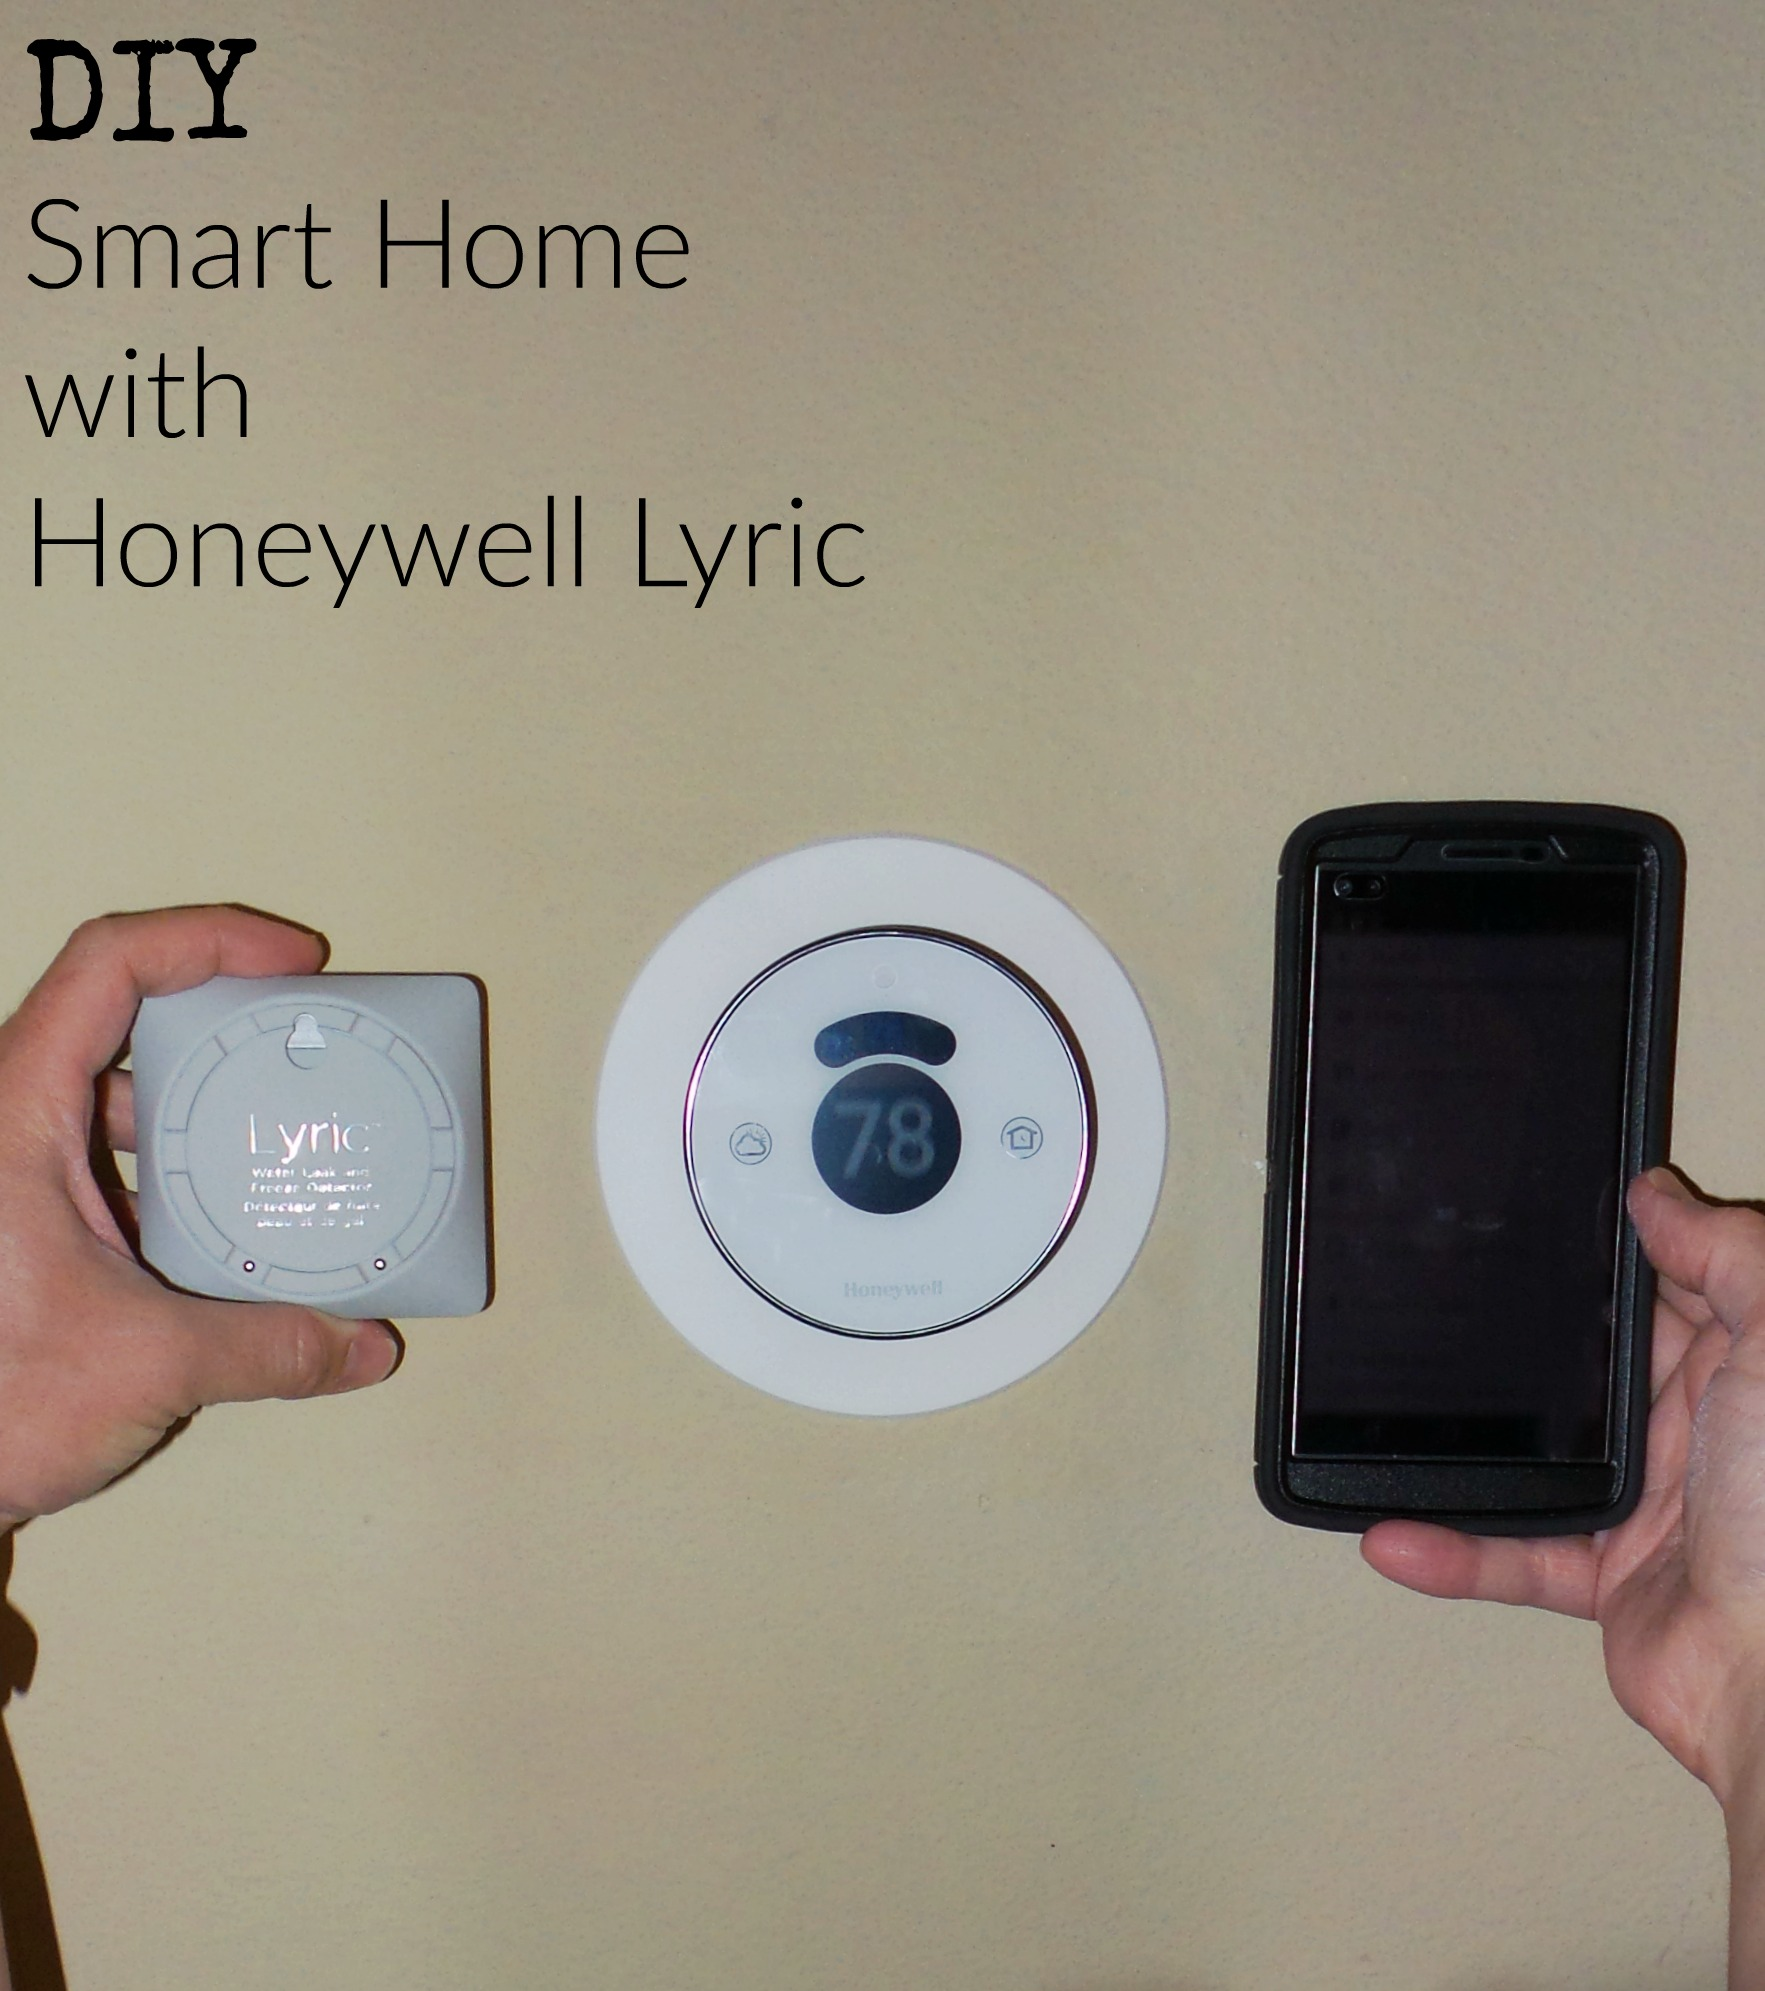 The Honeywell Lyric is a thermostat that will help you turn your house into a smart home.